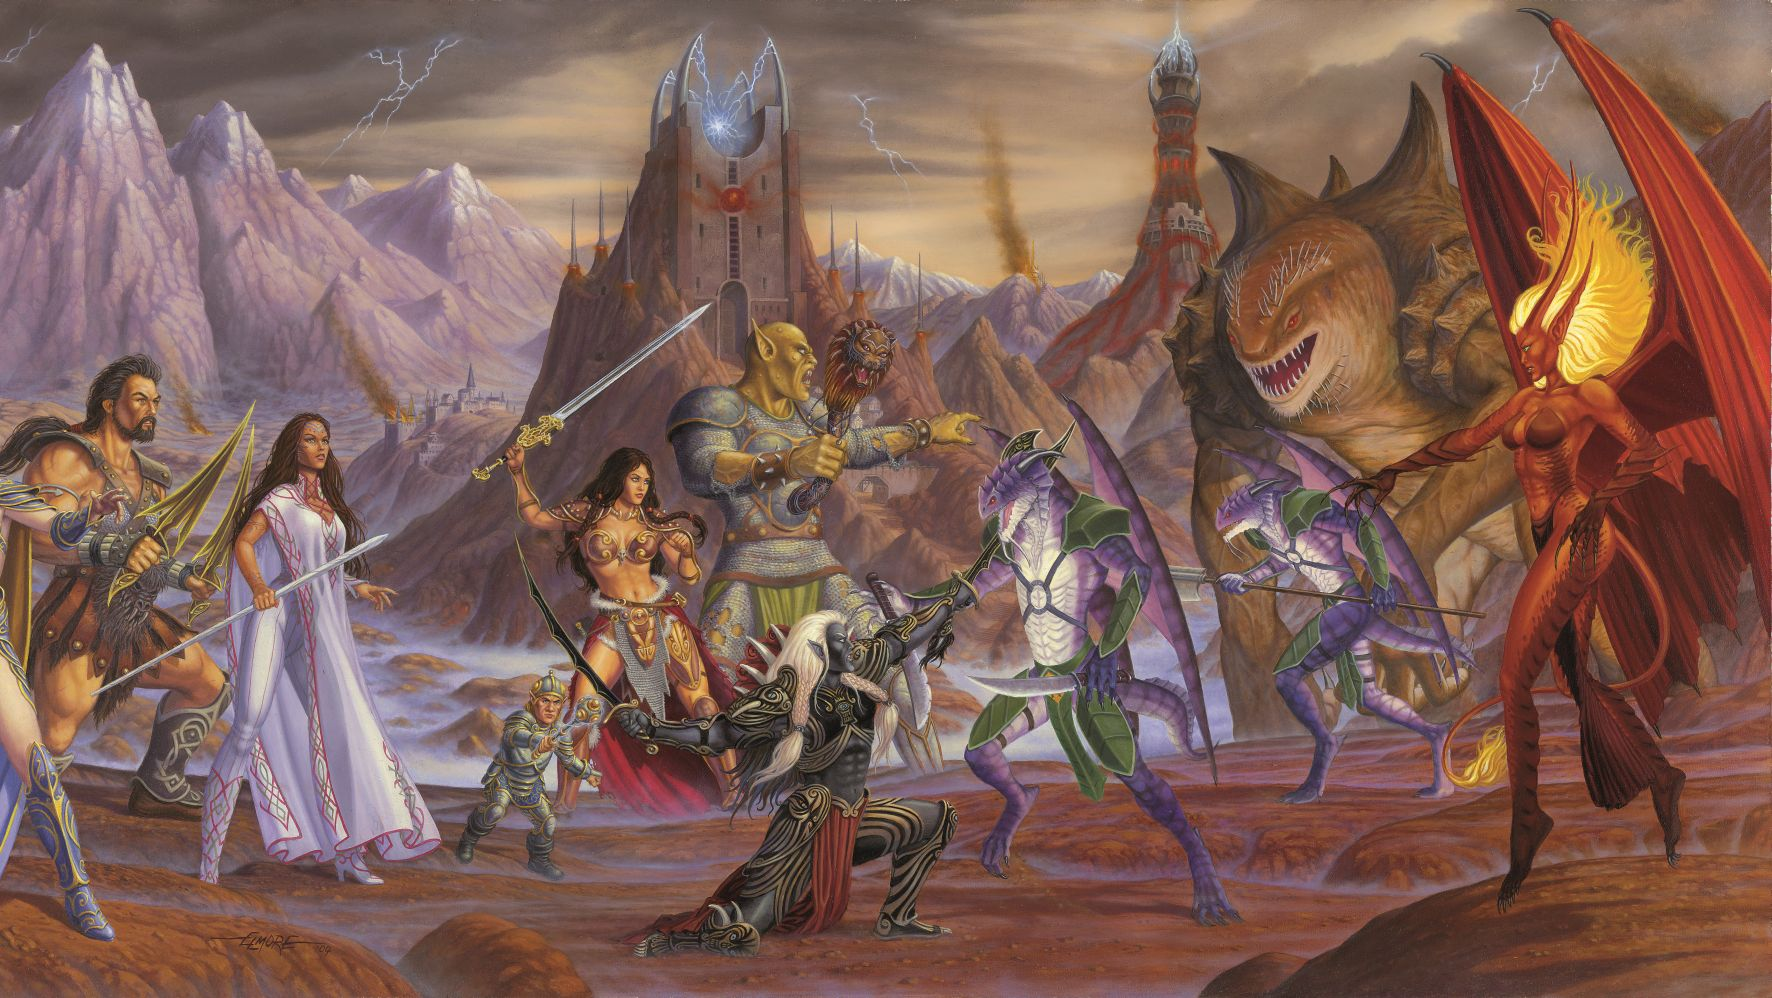 EverQuest is 20 years old, and people are still playing